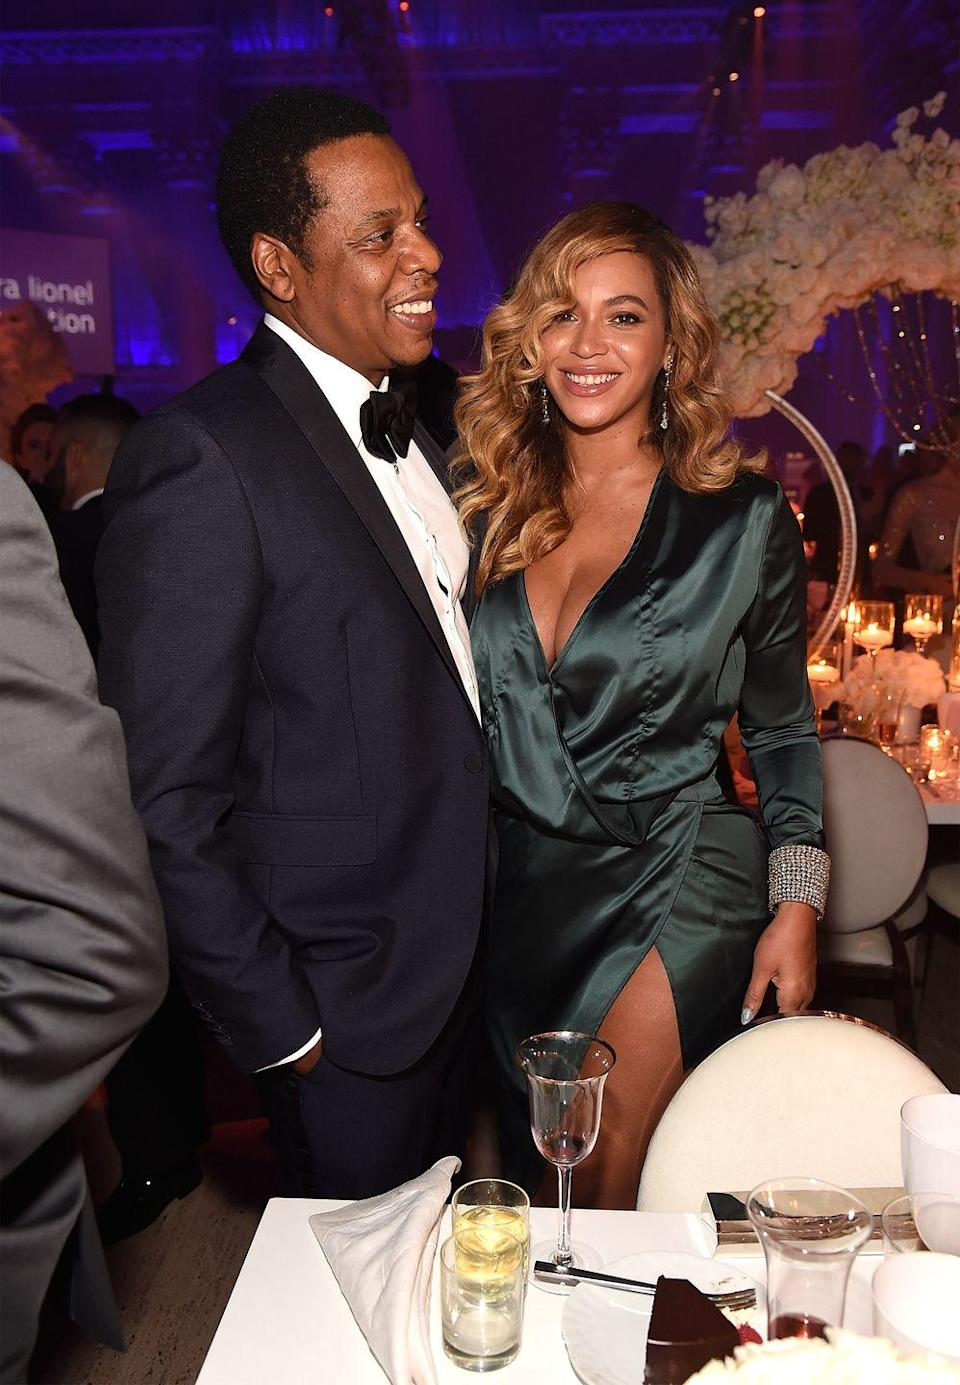 """<p>When <a href=""""https://www.goodhousekeeping.com/life/entertainment/a31096023/beyonce-kobe-bryant-memorial-performance-video/"""" rel=""""nofollow noopener"""" target=""""_blank"""" data-ylk=""""slk:Beyoncé"""" class=""""link rapid-noclick-resp"""">Beyoncé</a> released her visual album <em>Lemonade</em> in 2016, listeners and viewers immediately speculated that <a href=""""https://www.vanityfair.com/hollywood/2016/04/beyonce-lemonade-jay-z"""" rel=""""nofollow noopener"""" target=""""_blank"""" data-ylk=""""slk:it was all about her relationship"""" class=""""link rapid-noclick-resp"""">it was all about her relationship </a>with Jay-Z. """"Sorry"""" is an unapologetic song about Jay-Z's infidelity, which he later <a href=""""https://ew.com/music/2017/06/30/jay-z-becky-beyonce-444-lyrics/"""" rel=""""nofollow noopener"""" target=""""_blank"""" data-ylk=""""slk:admitted to"""" class=""""link rapid-noclick-resp"""">admitted to</a>. Plus, it gave us the <a href=""""https://www.elle.com/culture/music/news/a38269/becky-with-the-good-hair-diana-gordon-interview/"""" rel=""""nofollow noopener"""" target=""""_blank"""" data-ylk=""""slk:forever-iconic line"""" class=""""link rapid-noclick-resp"""">forever-iconic line</a>, """"He better call Becky with the good hair."""" </p>"""